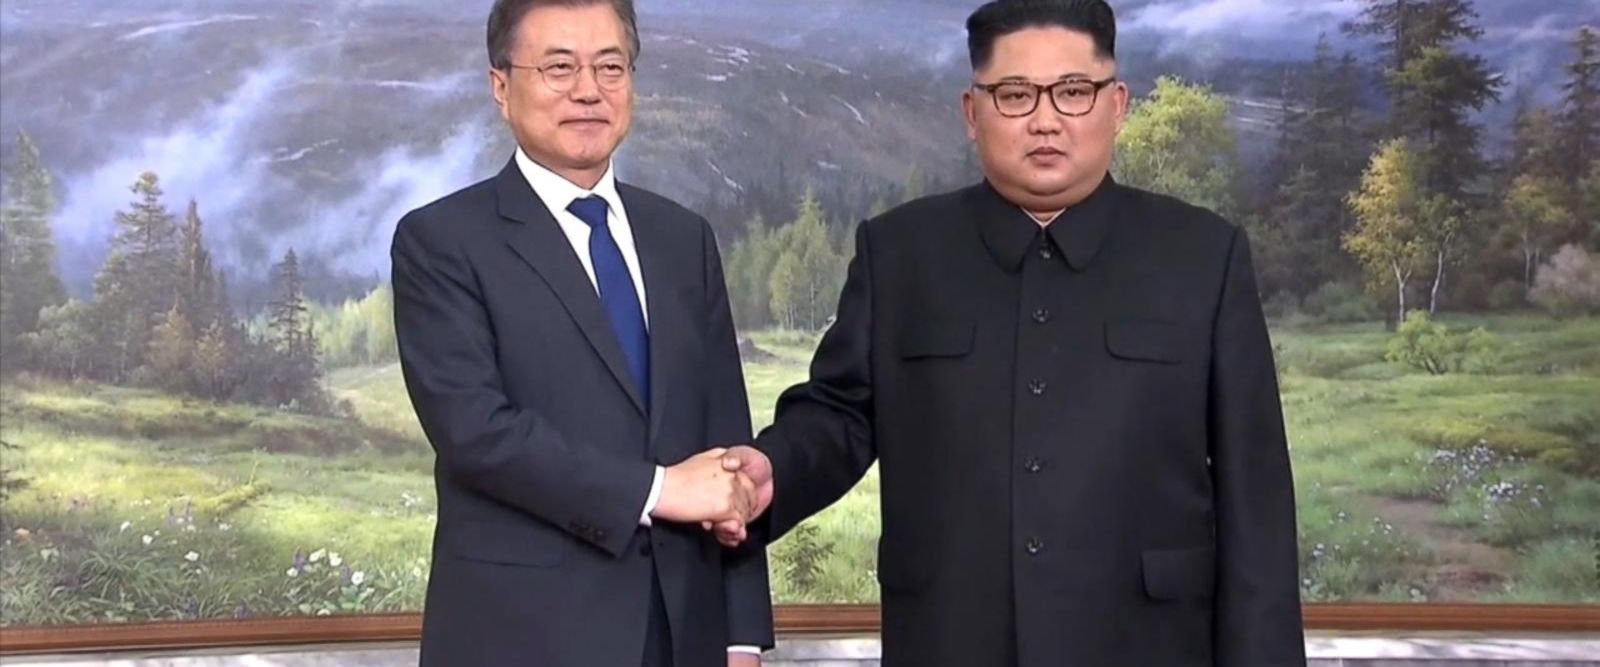 VIDEO: New details emerge from surprise meeting of Korean leaders